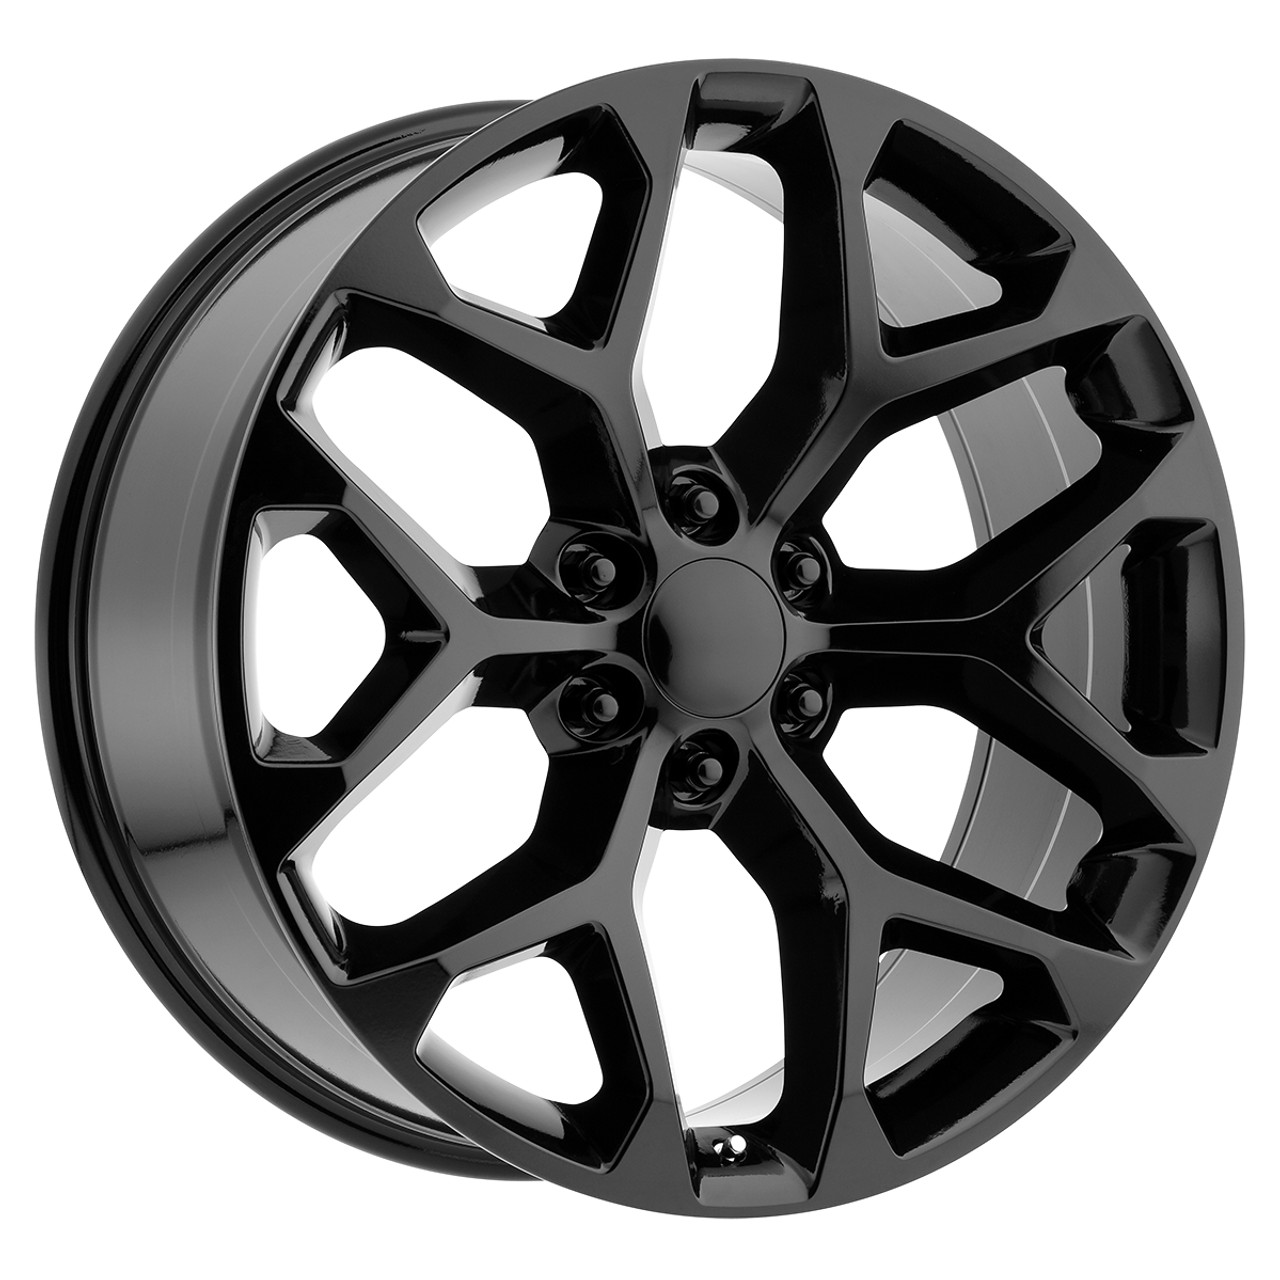 GM Replica 24 Inch Gloss Black Snowflake Rims for ...